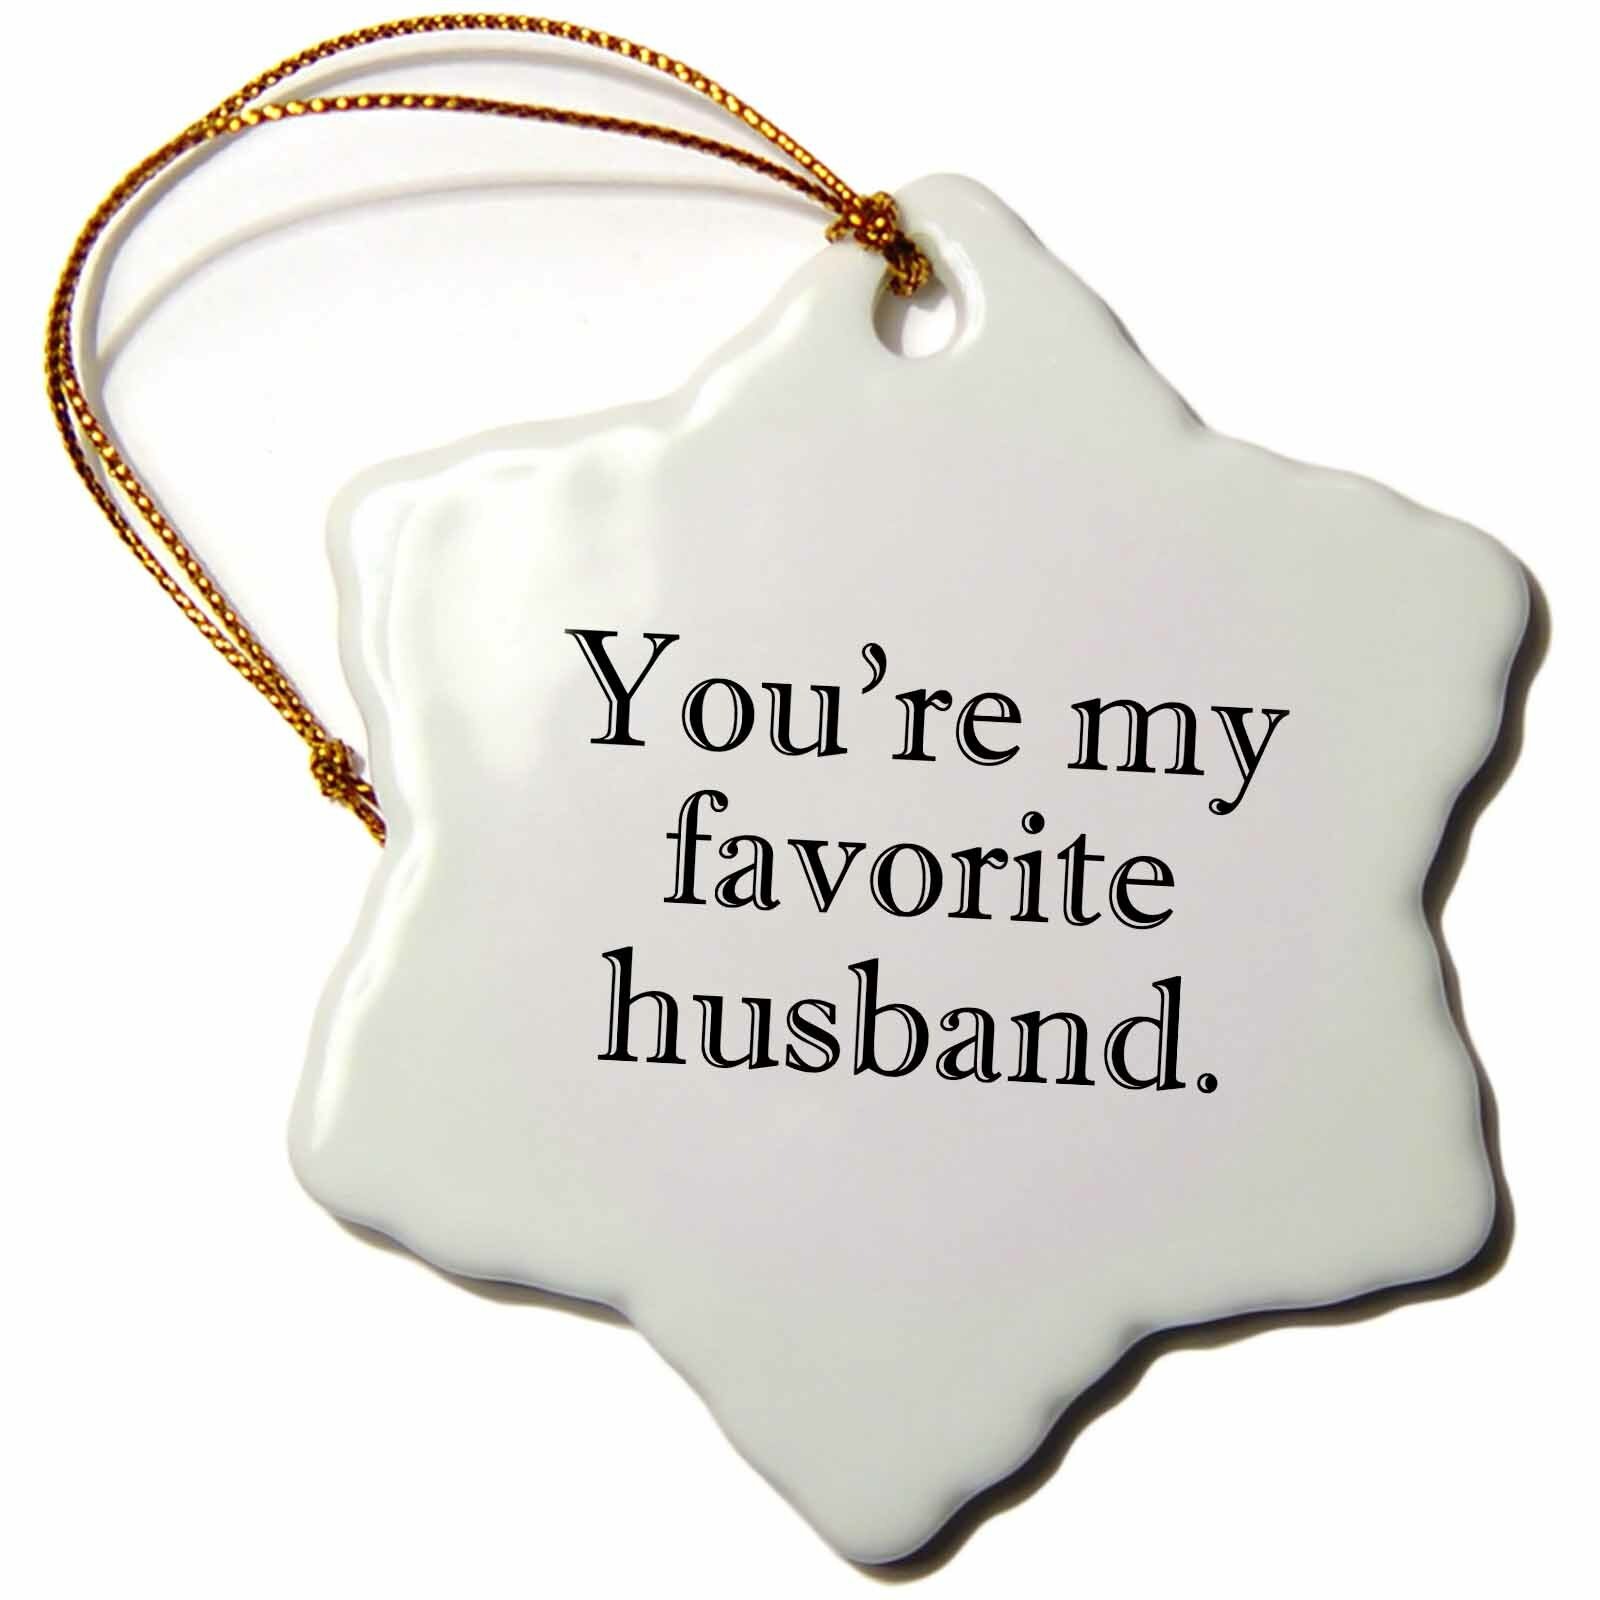 The Holiday Aisle You Re My Favorite Husband Snowflake Holiday Shaped Ornament Wayfair